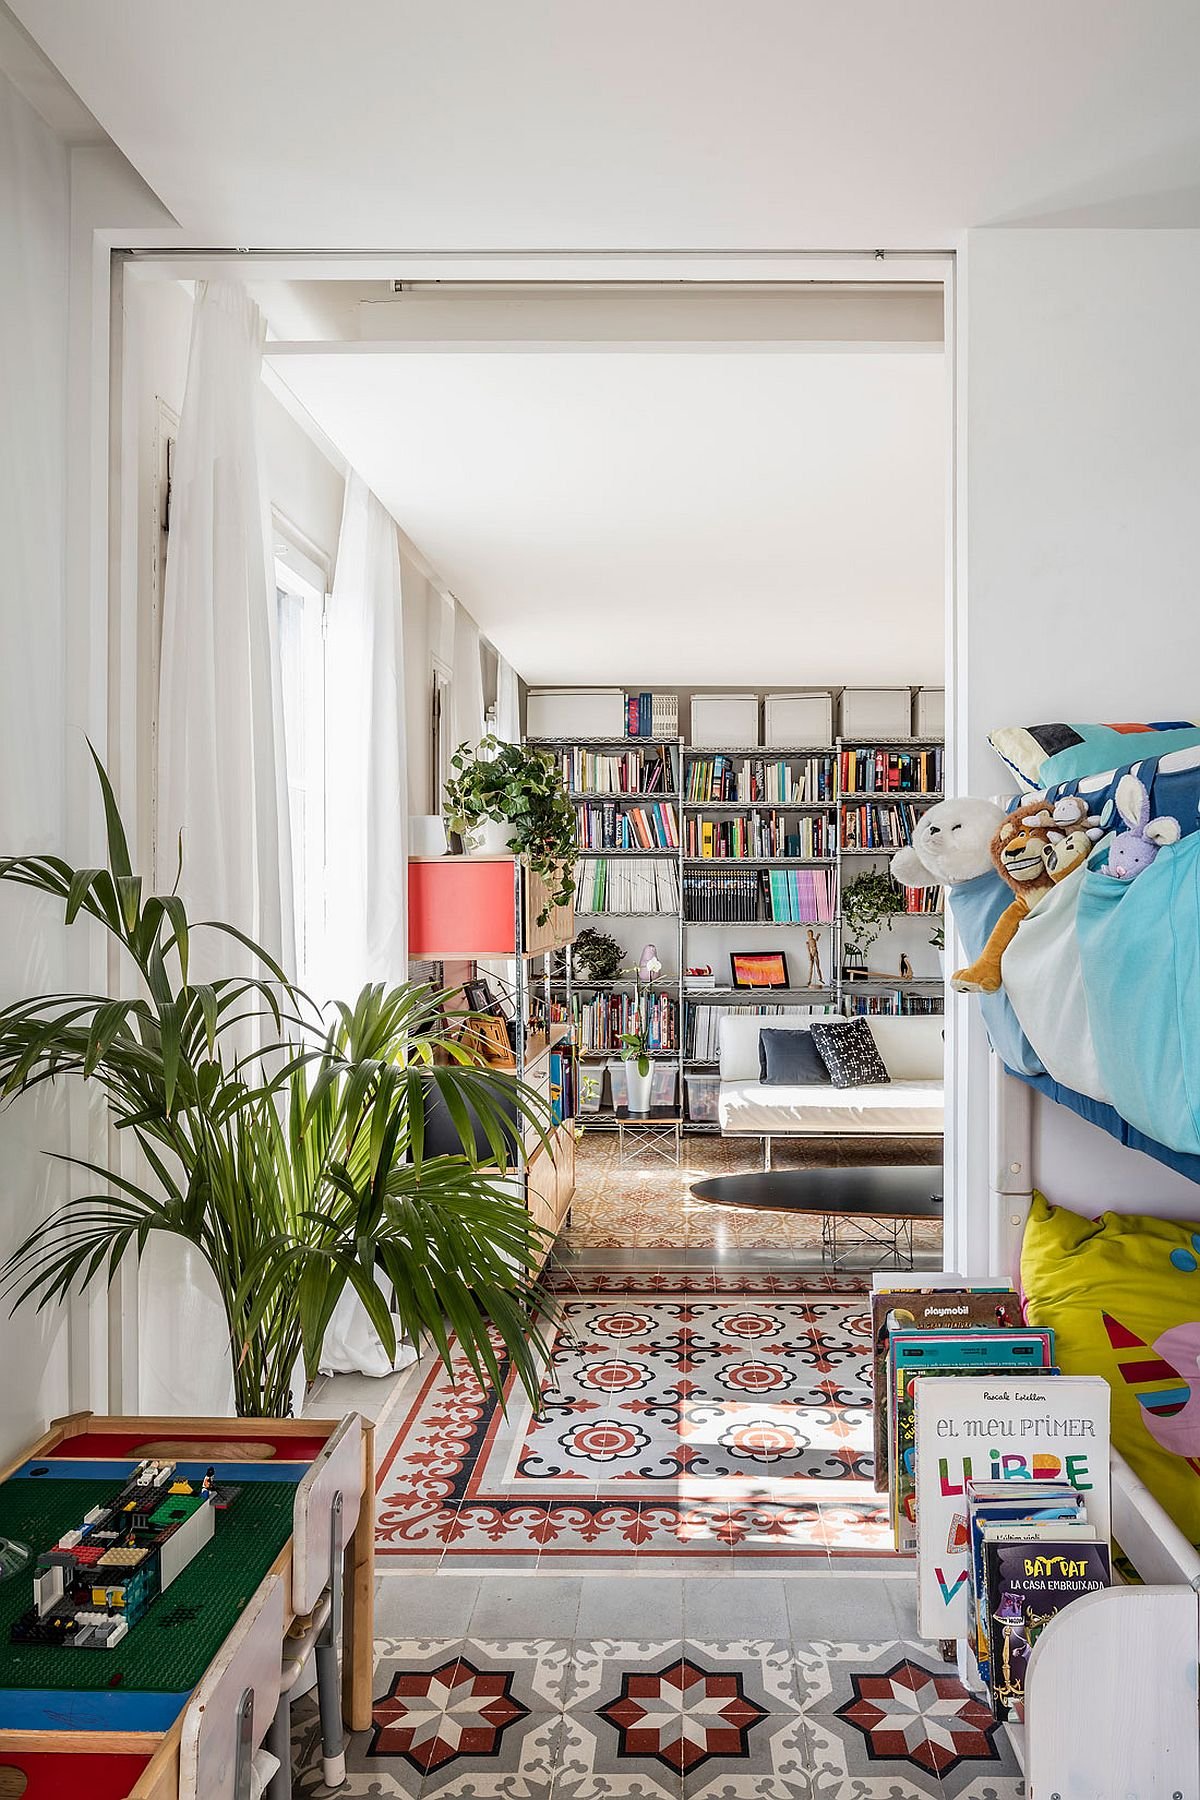 Bookshelf adds color and character to the living area